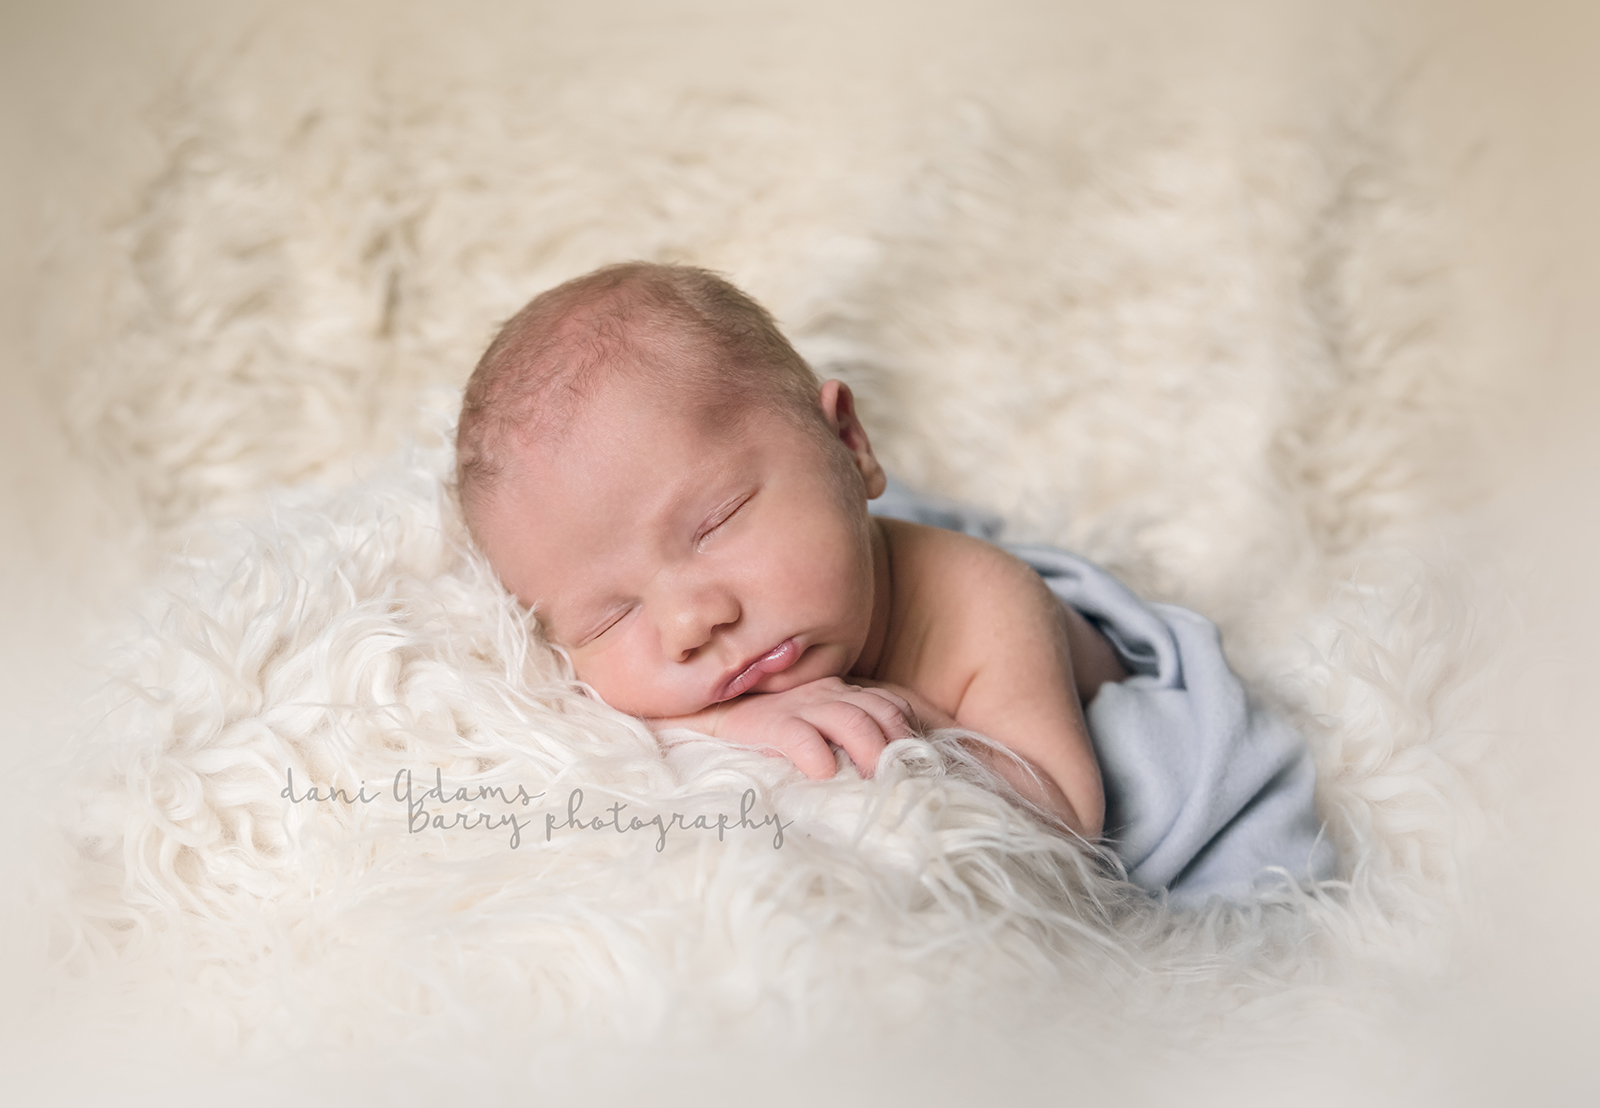 Newborn boy photography ideas